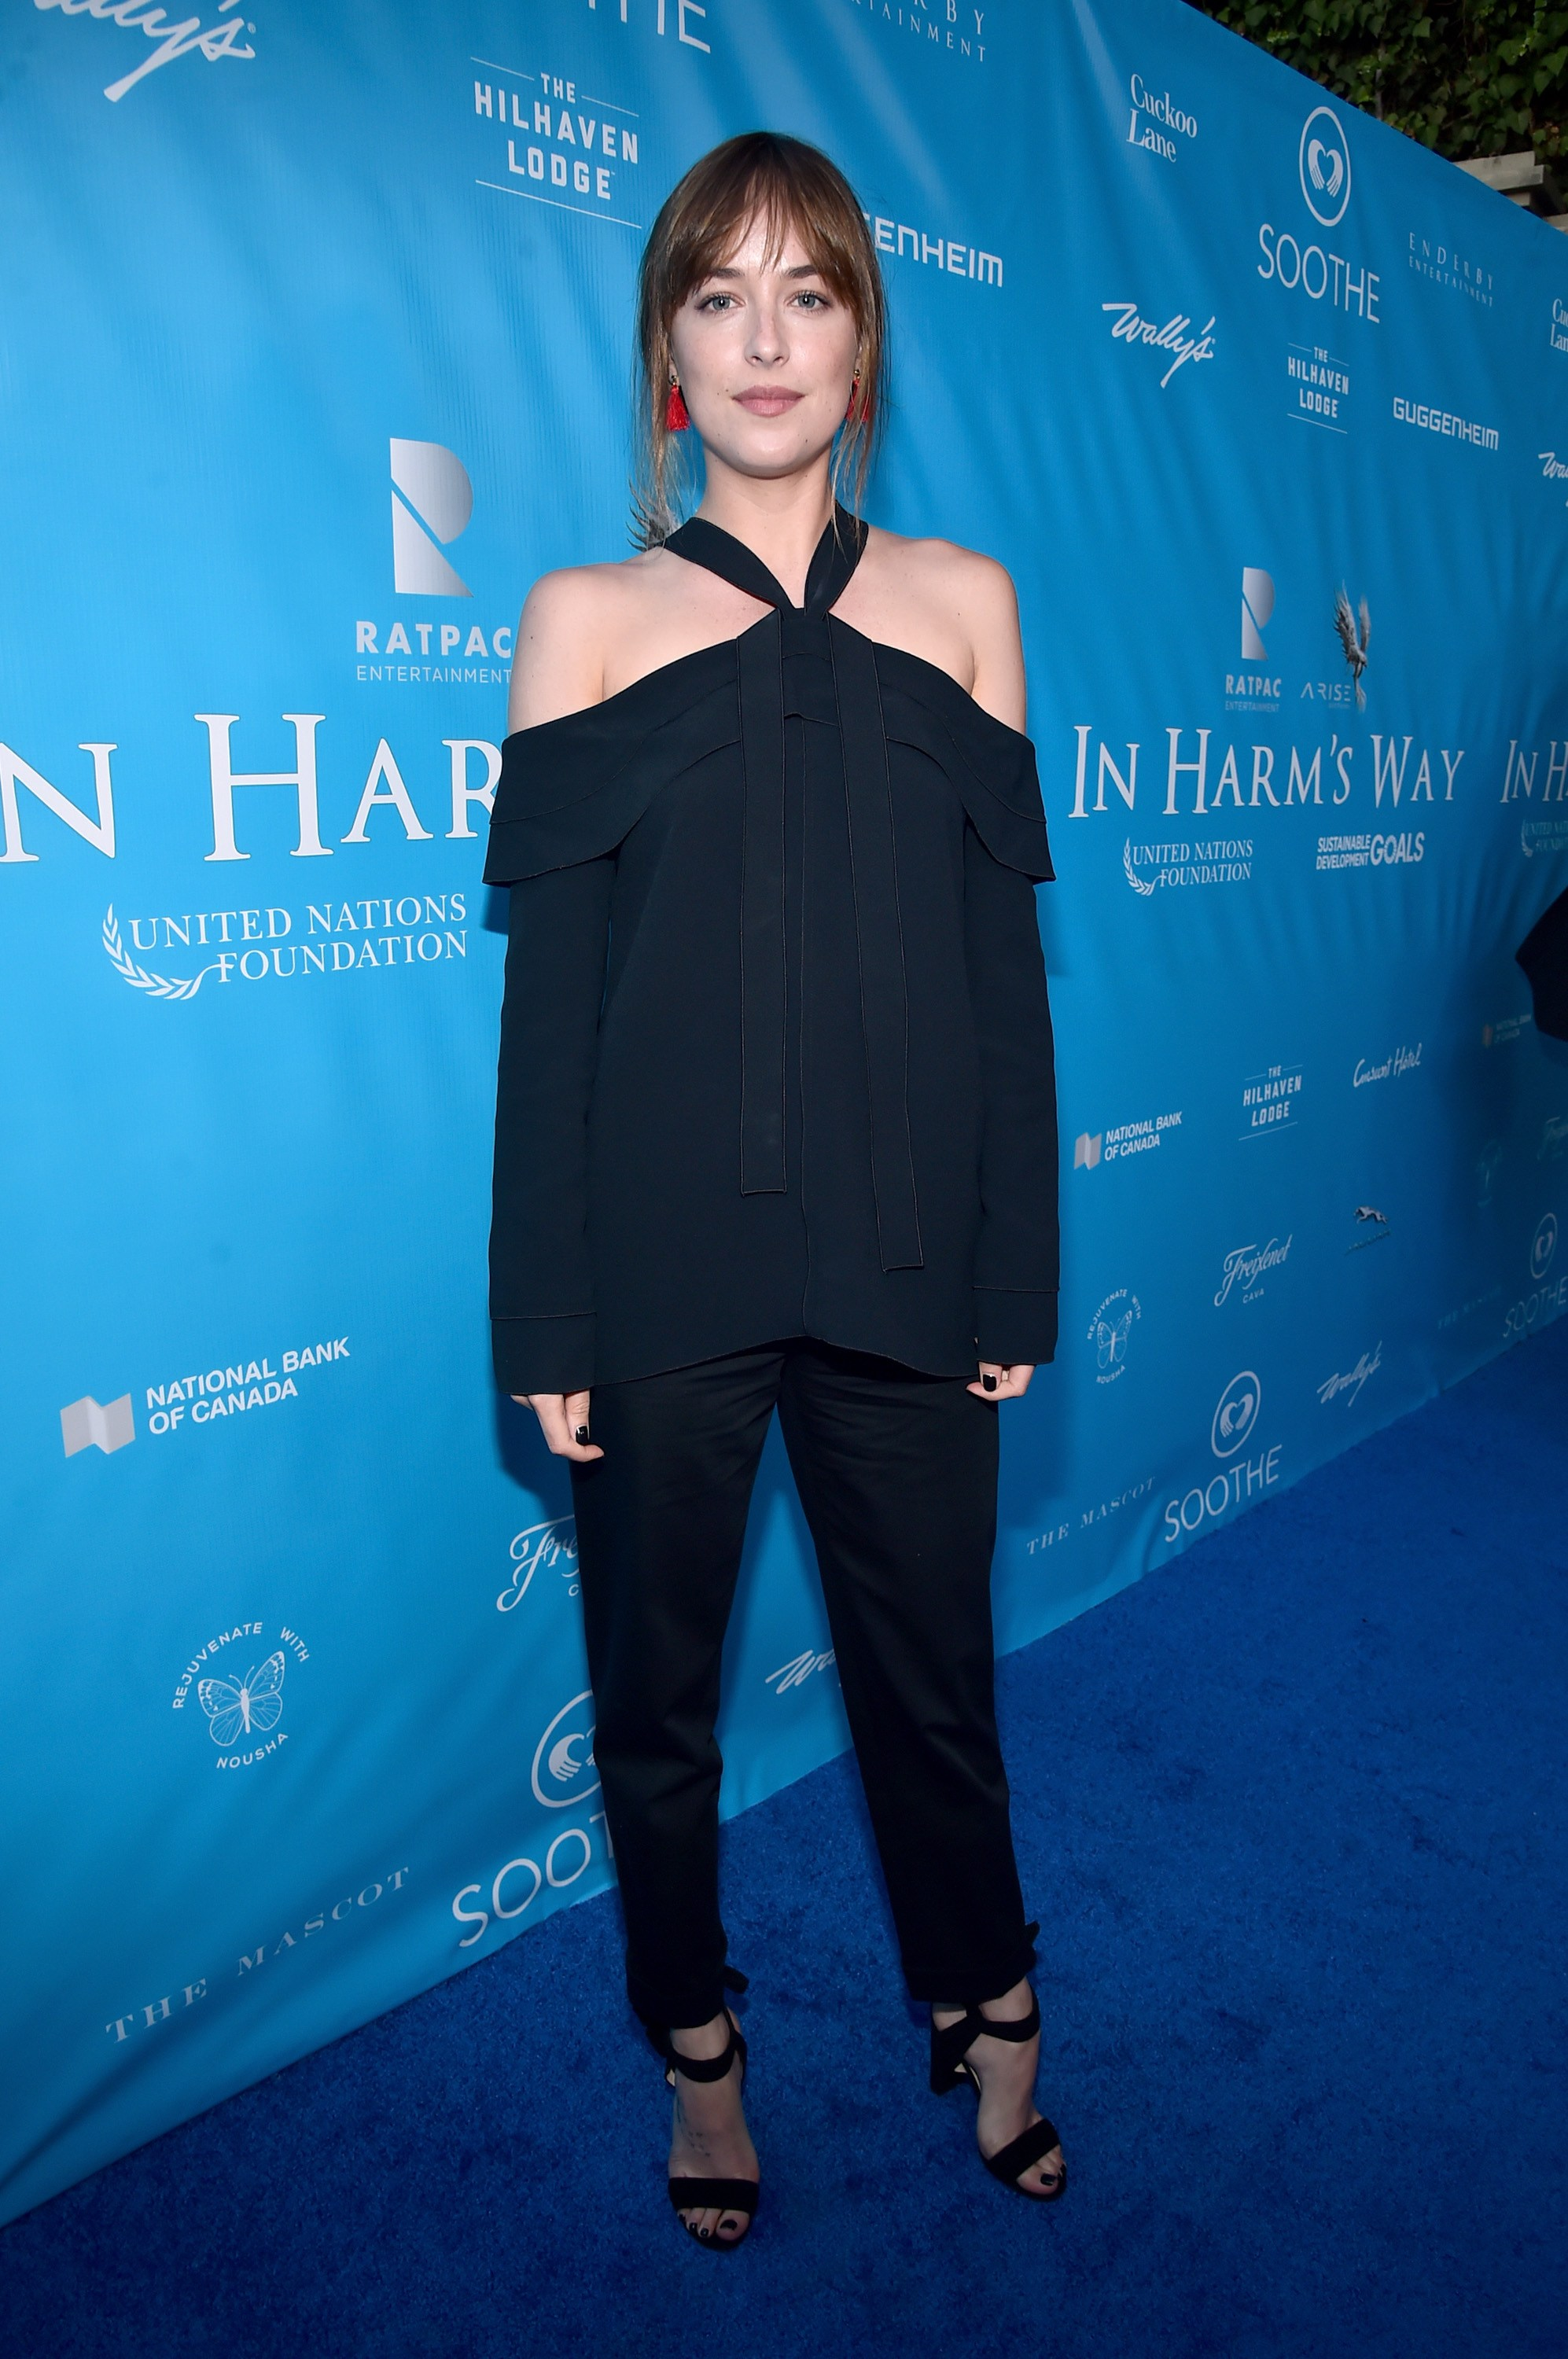 Best Dressed Red Carpet August 15 Dakota Johnson In Harm's Way Event